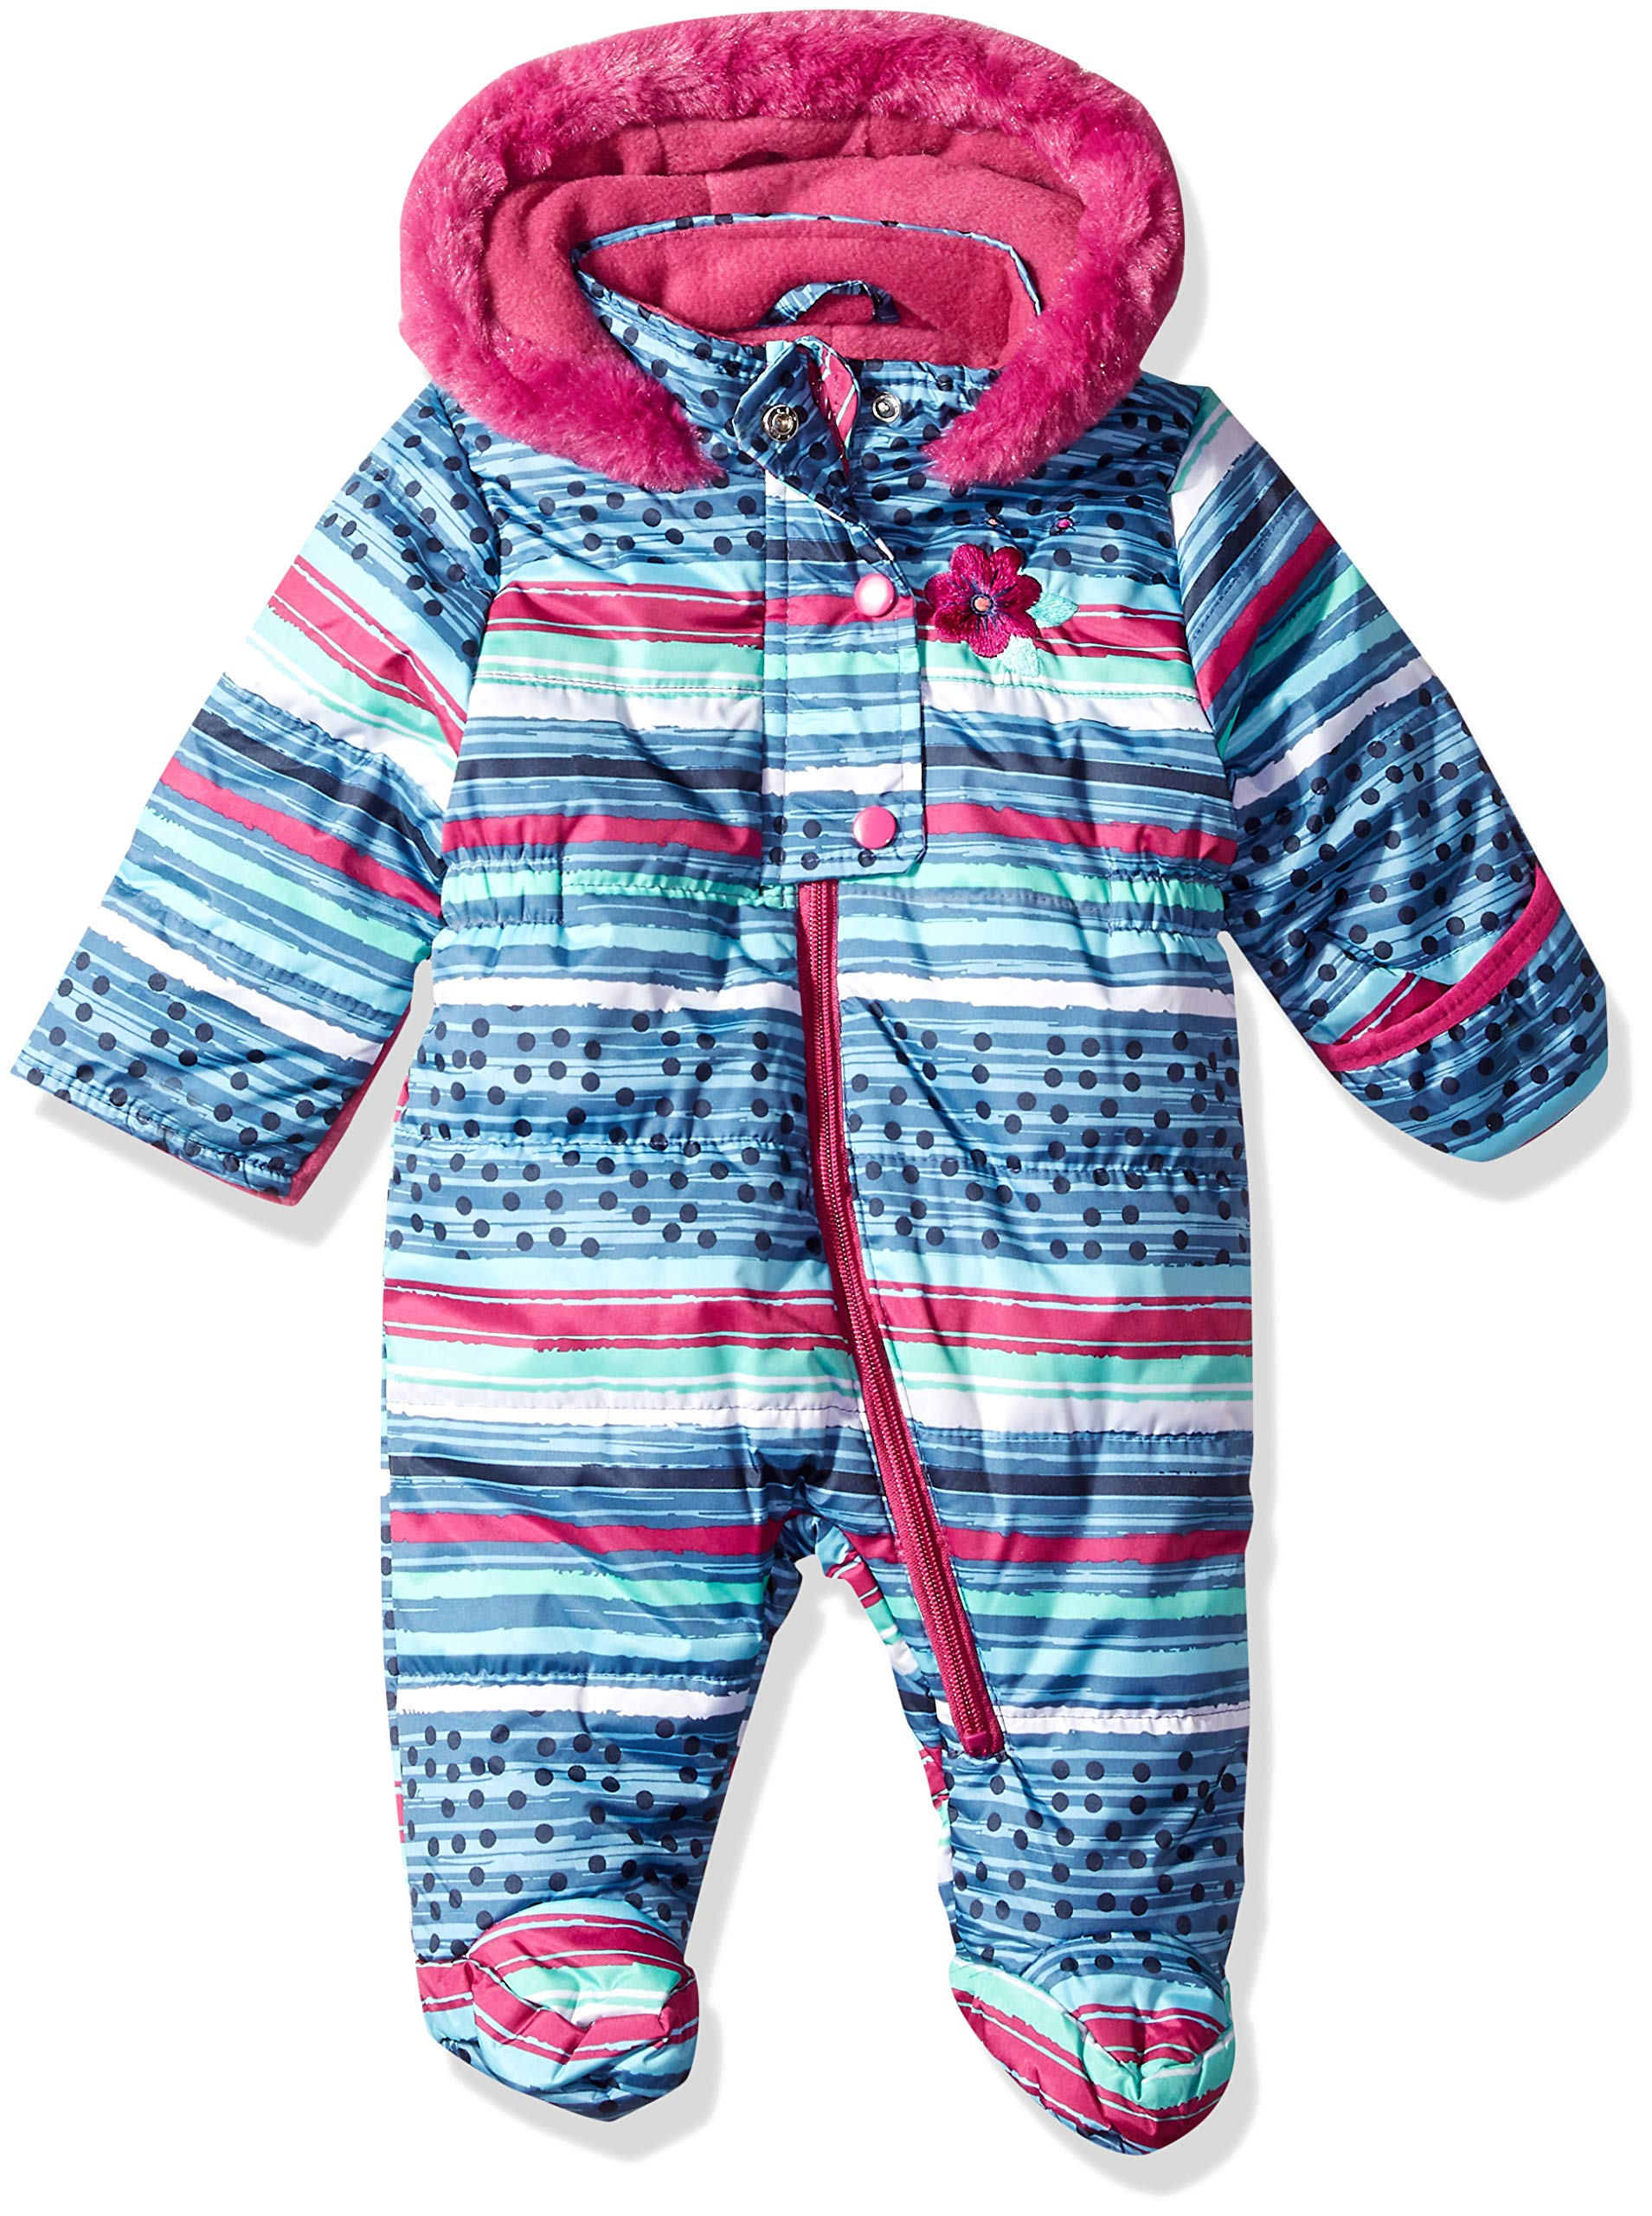 Wippette Baby Girls Striped Snowsuit Pram, Plum, 6/9M by Wippette